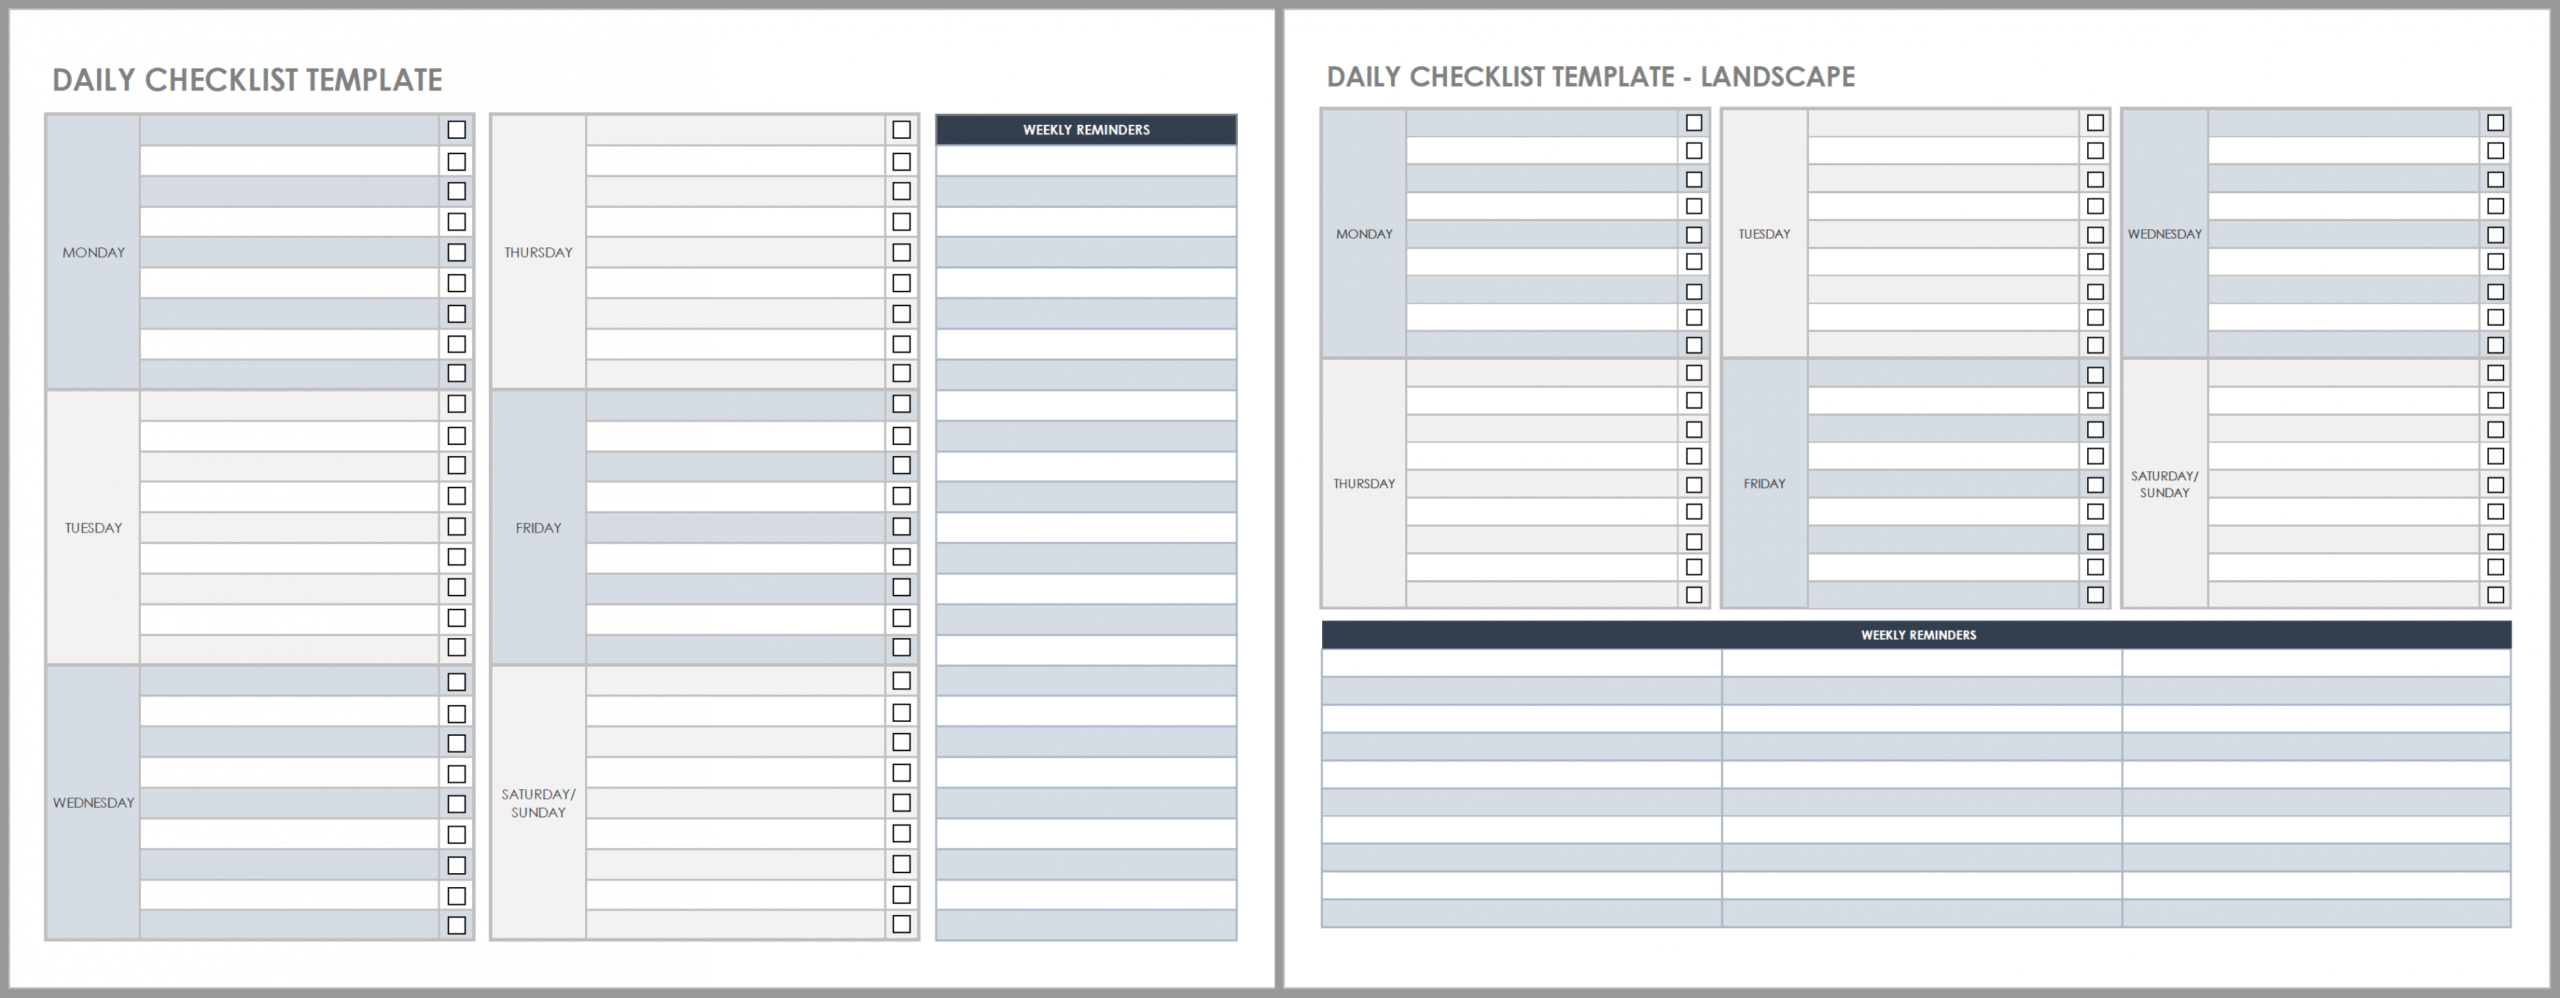 sample free daily work schedule templates  smartsheet daily routine checklist template excel